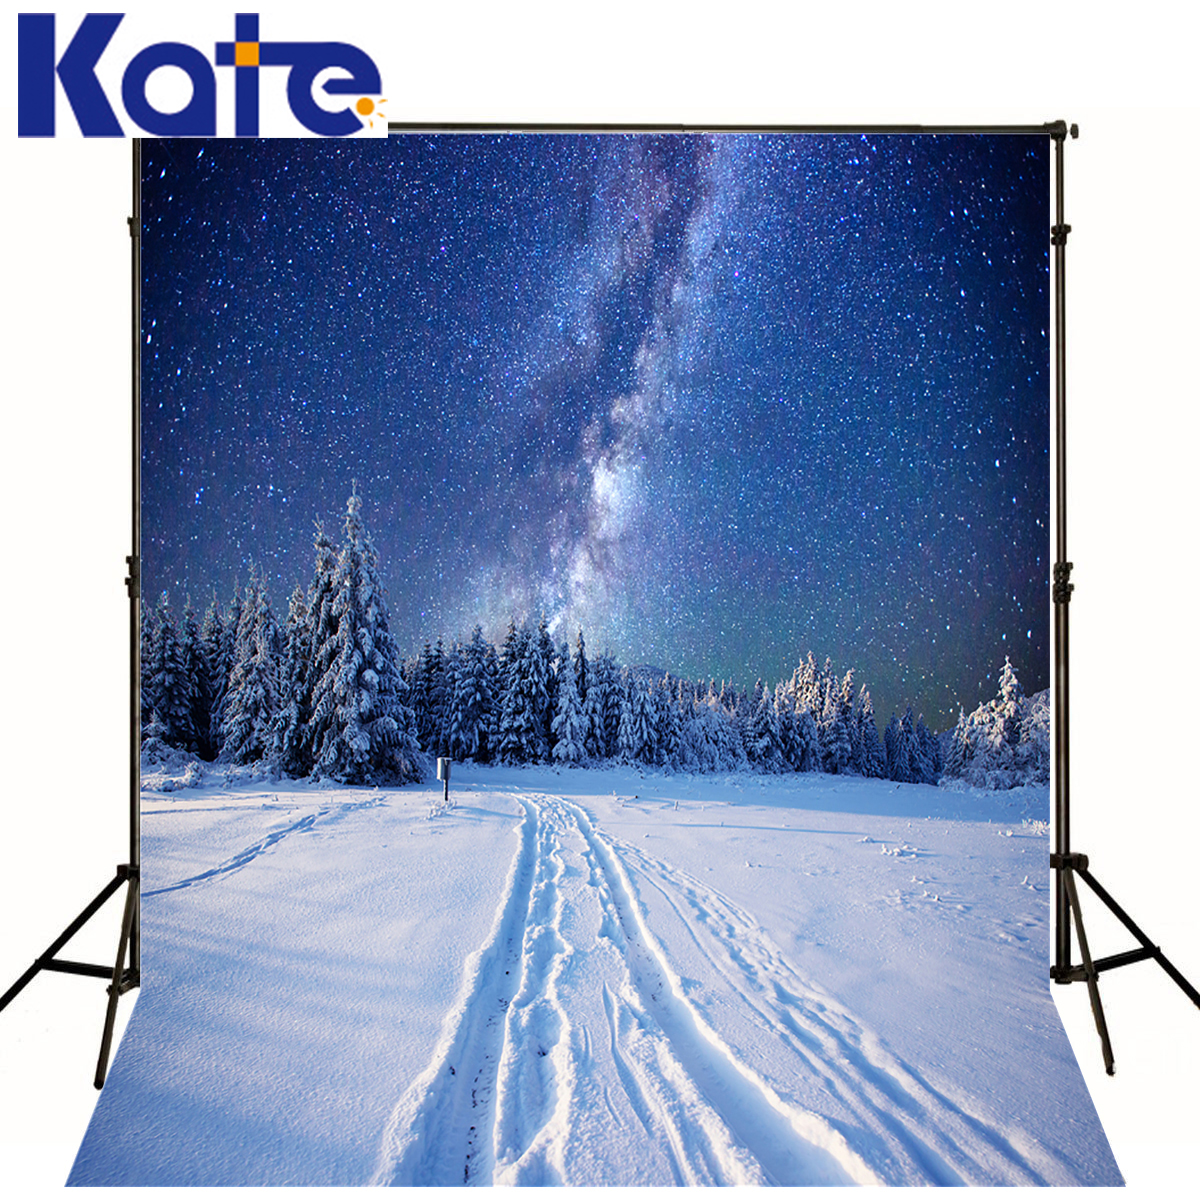 KATE Winter Backgrounds Photography Starry Sky Photo Studio Scenery Snow Forest Orbit Background For Children Photo Studio<br>